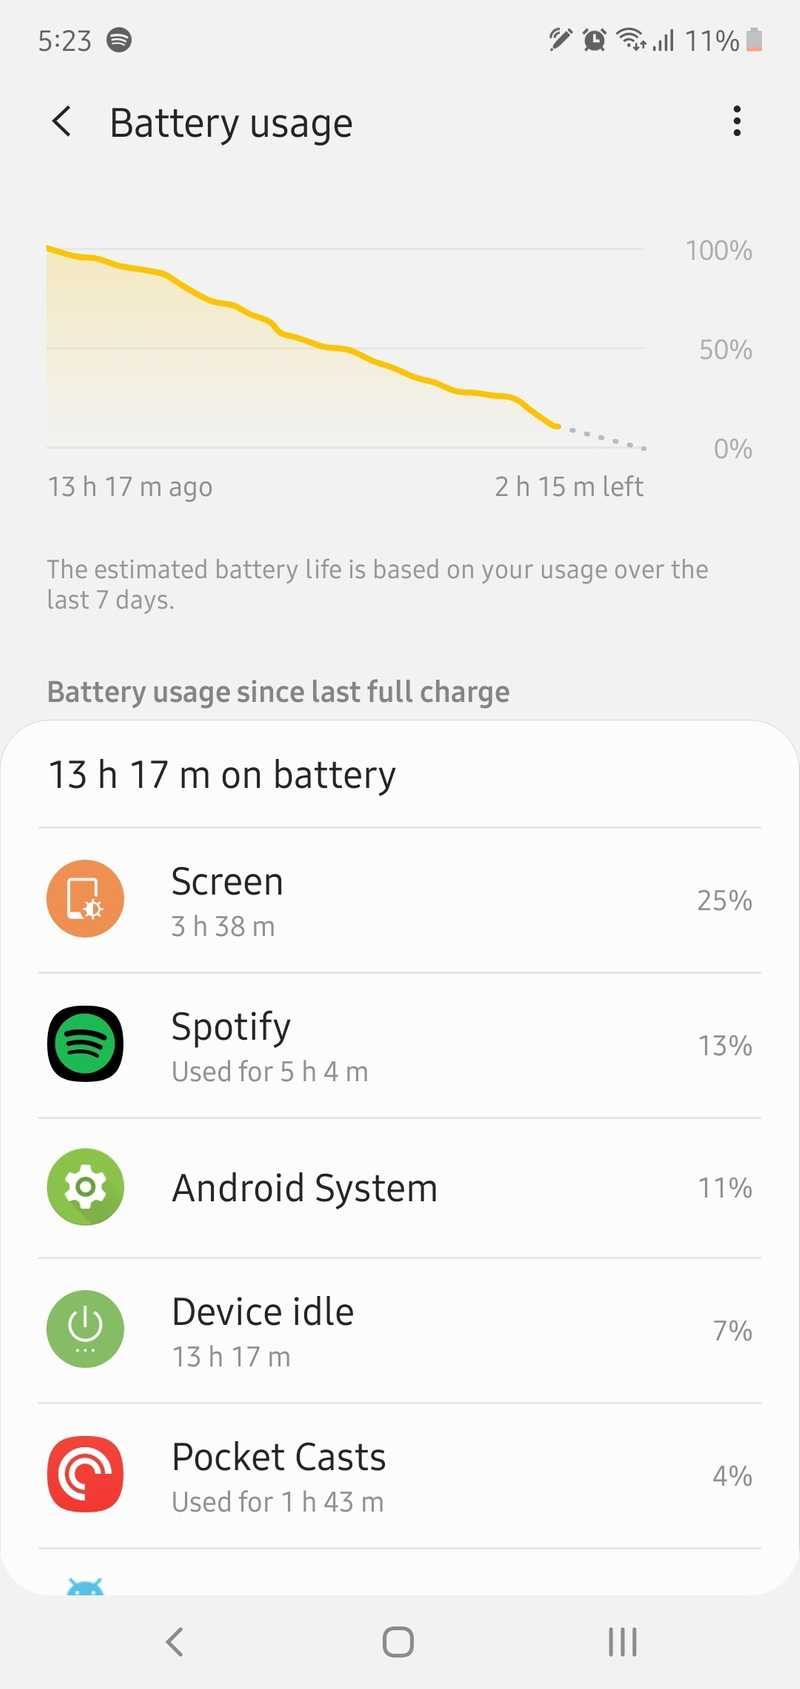 13 hours and 17 minutes on battery with 3 hours and 38 minutes of screen on time